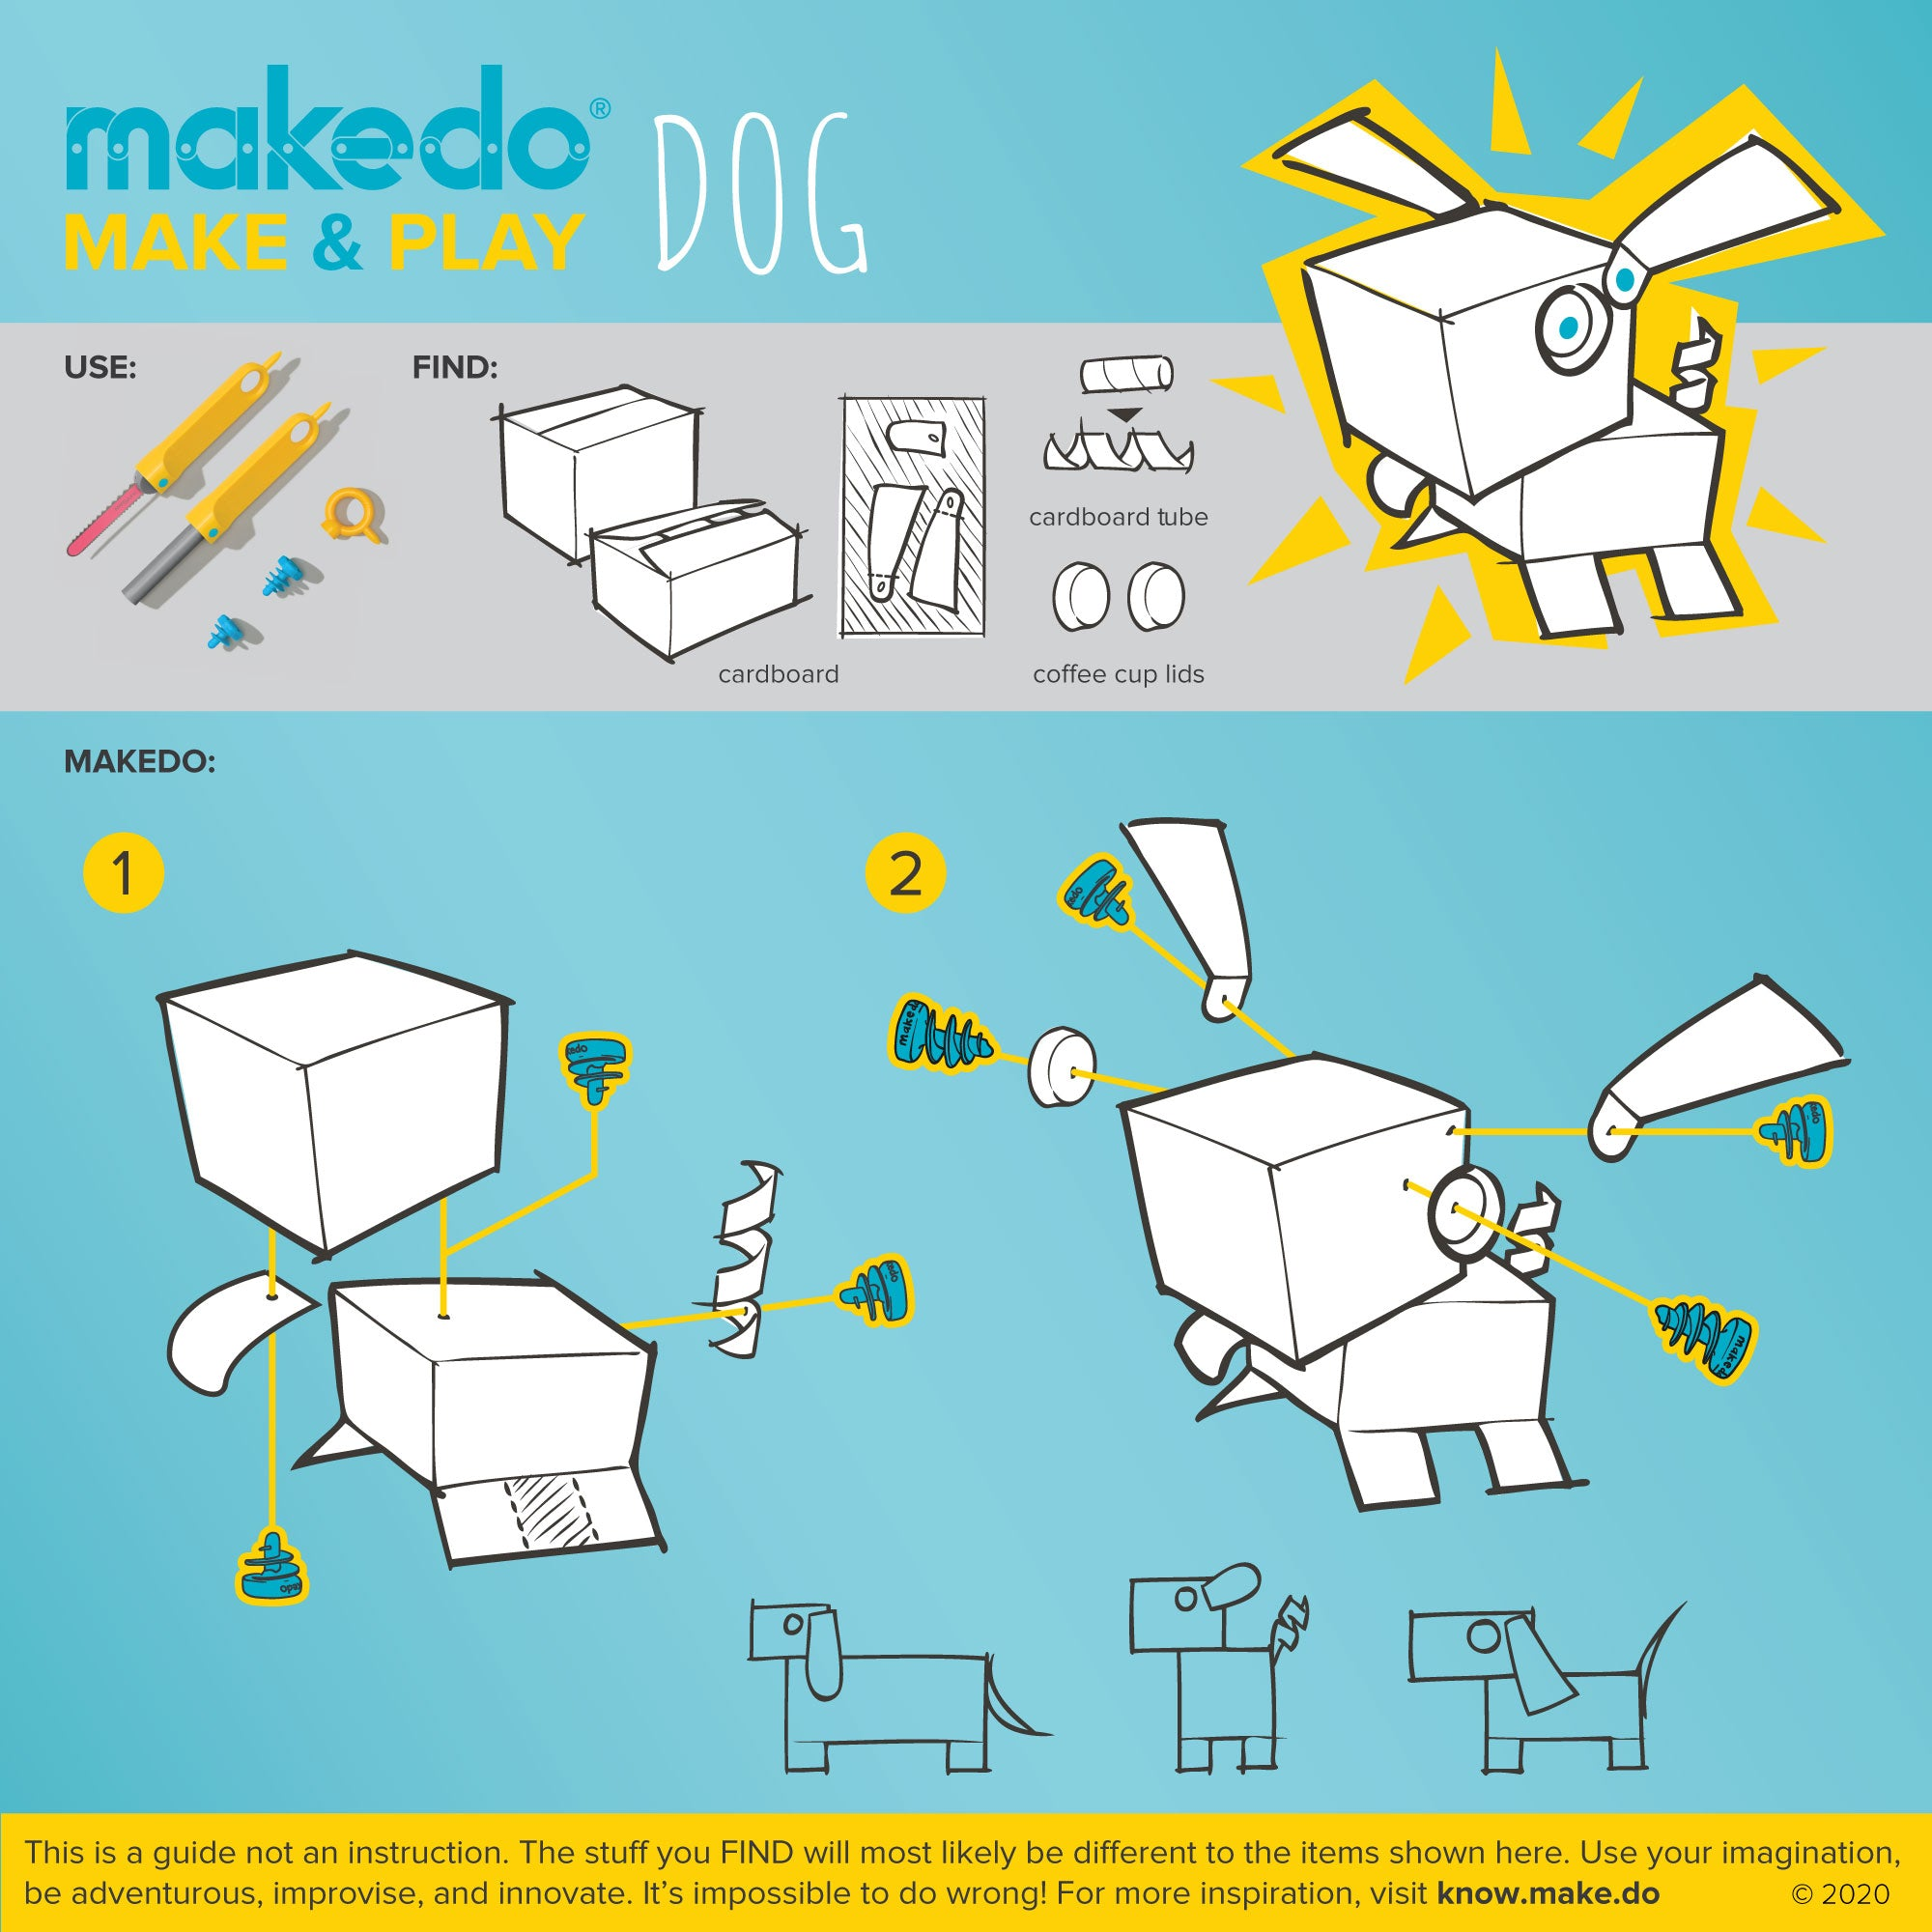 Makedo Make & Play guided creation - Dog